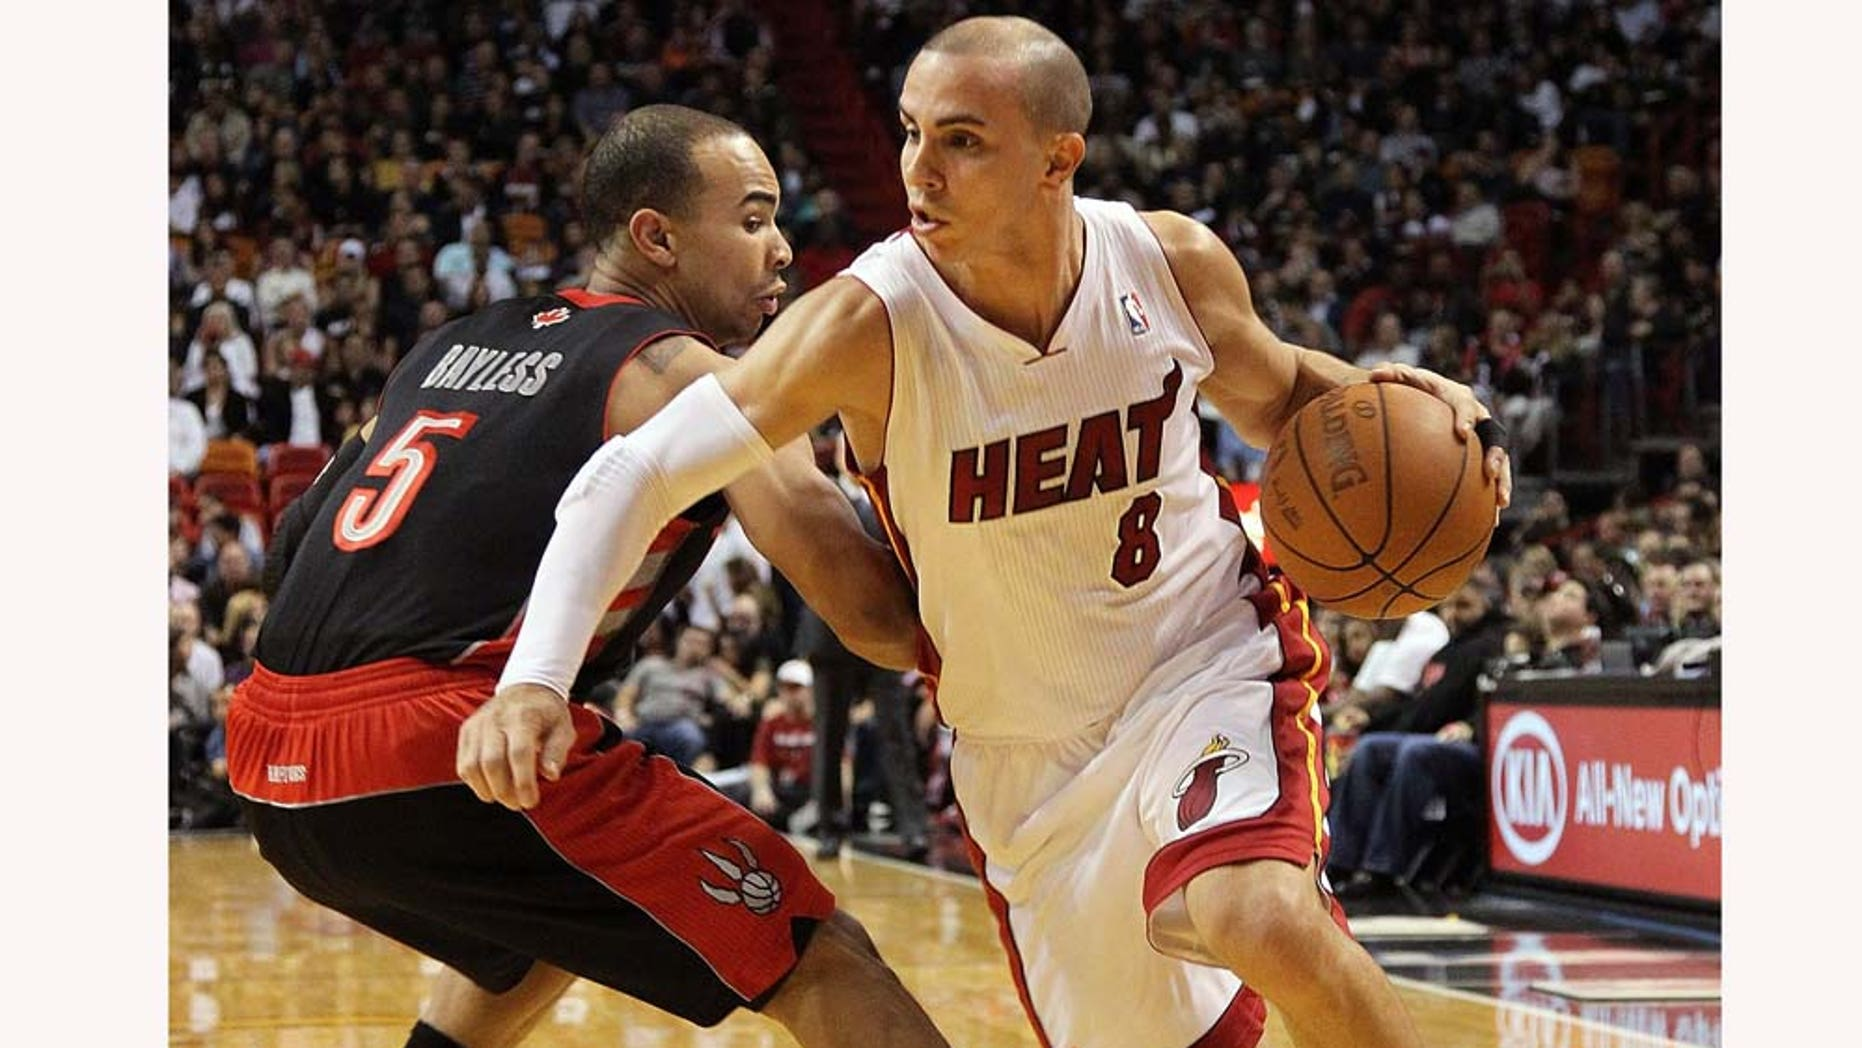 MIAMI, FL - JANUARY 22:  Carlos Arroyo #8 of the Miami Heat dribbles by Jerryd Bayless #5 of the Toronto Raptors during a game at American Airlines Arena on January 22, 2011 in Miami, Florida. NOTE TO USER: User expressly acknowledges and agrees that, by downloading and/or using this Photograph, User is consenting to the terms and conditions of the Getty Images License Agreement.  (Photo by Mike Ehrmann/Getty Images)